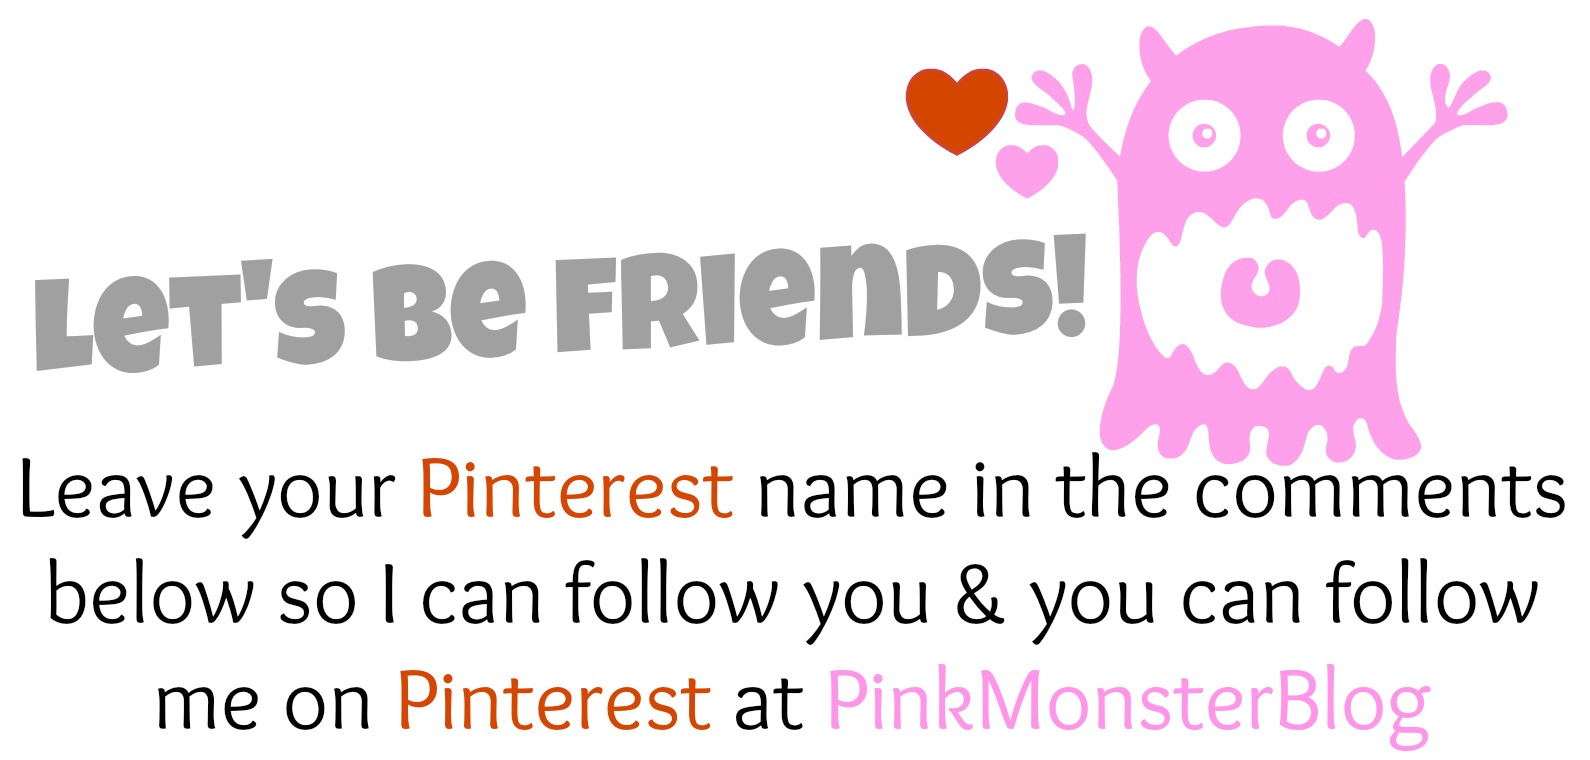 pinterest friends forever!